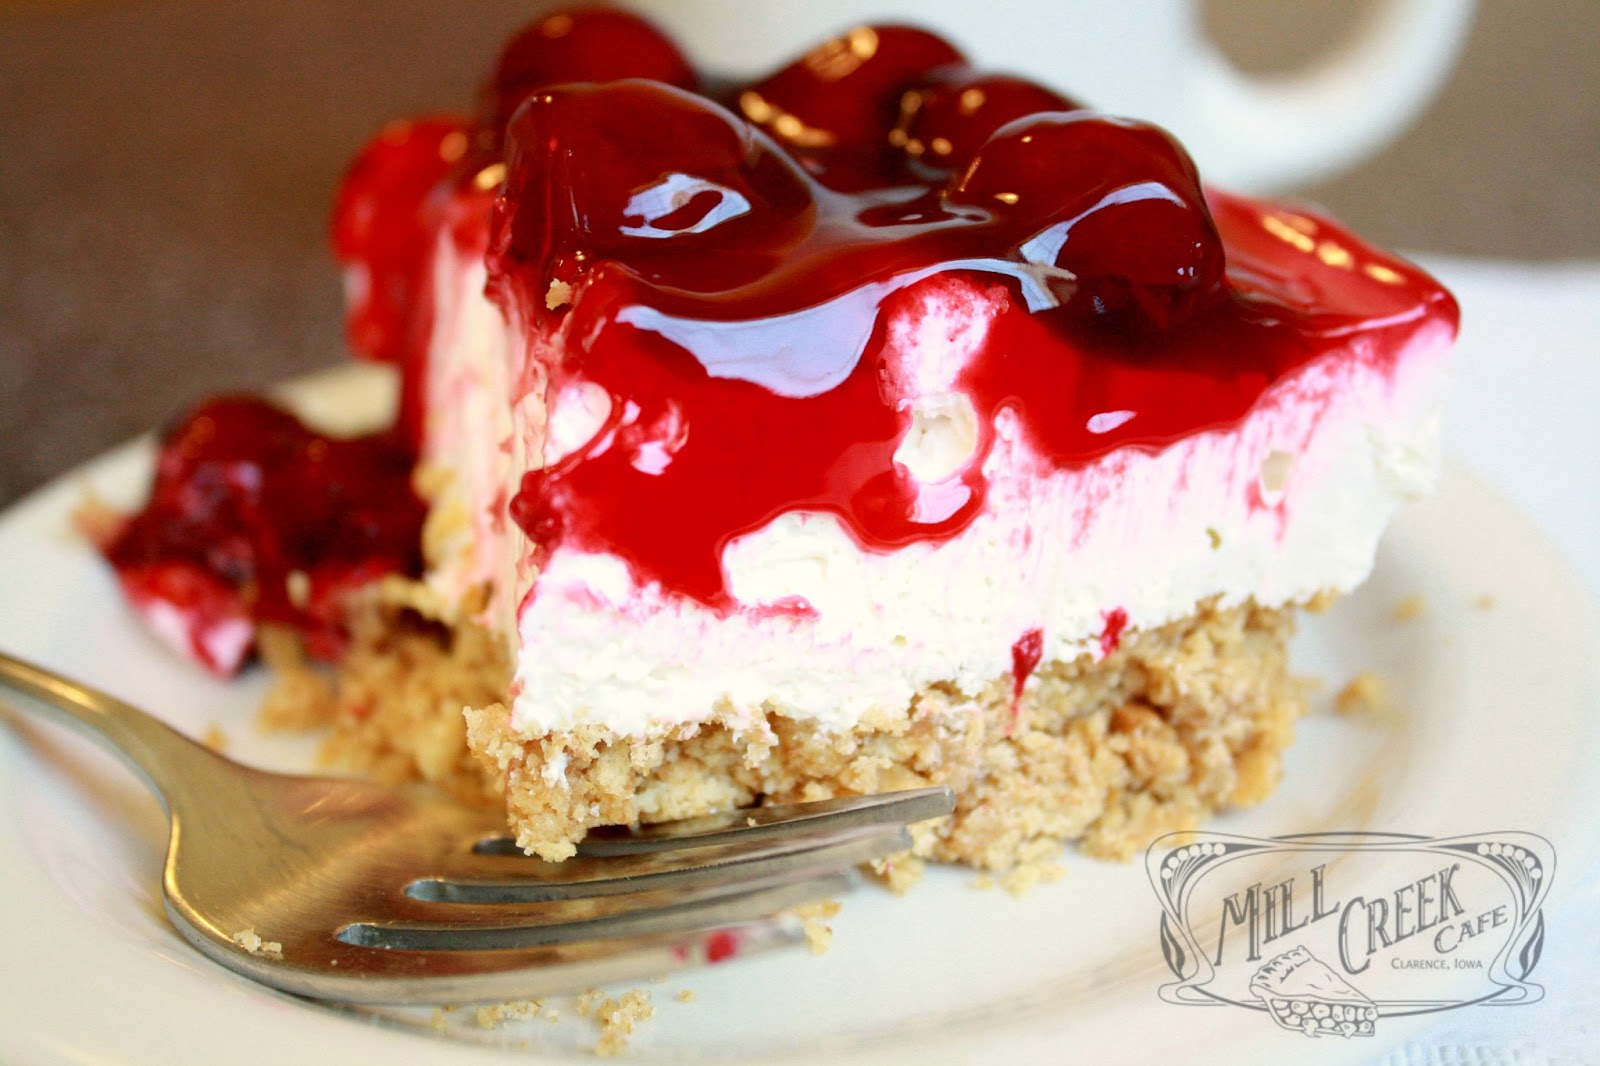 Mill Creek Cafe: Mill Creek Cherry Cheesecake